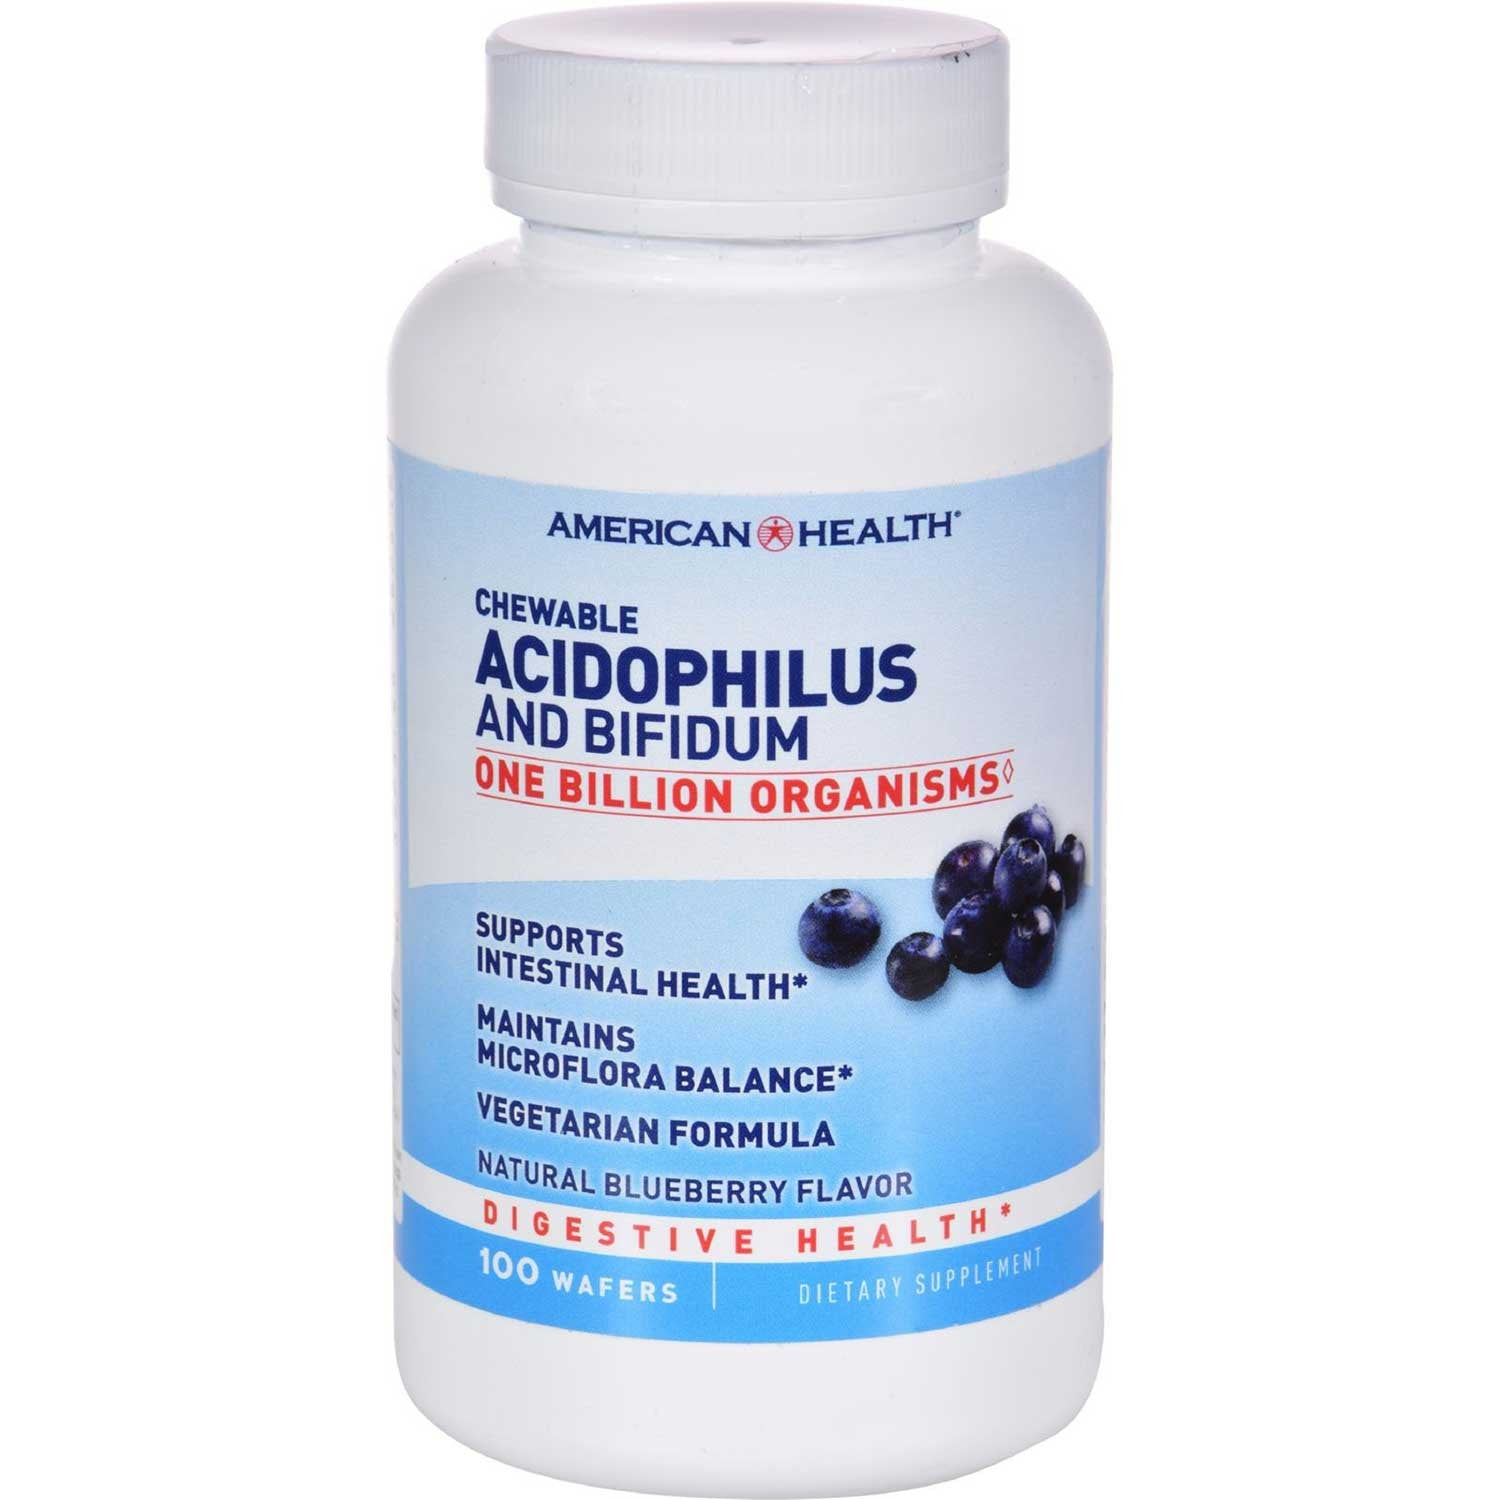 American Health Chewable Acidophilus w/Bifidus - Blueberry, 100 tabs.-NaturesWisdom